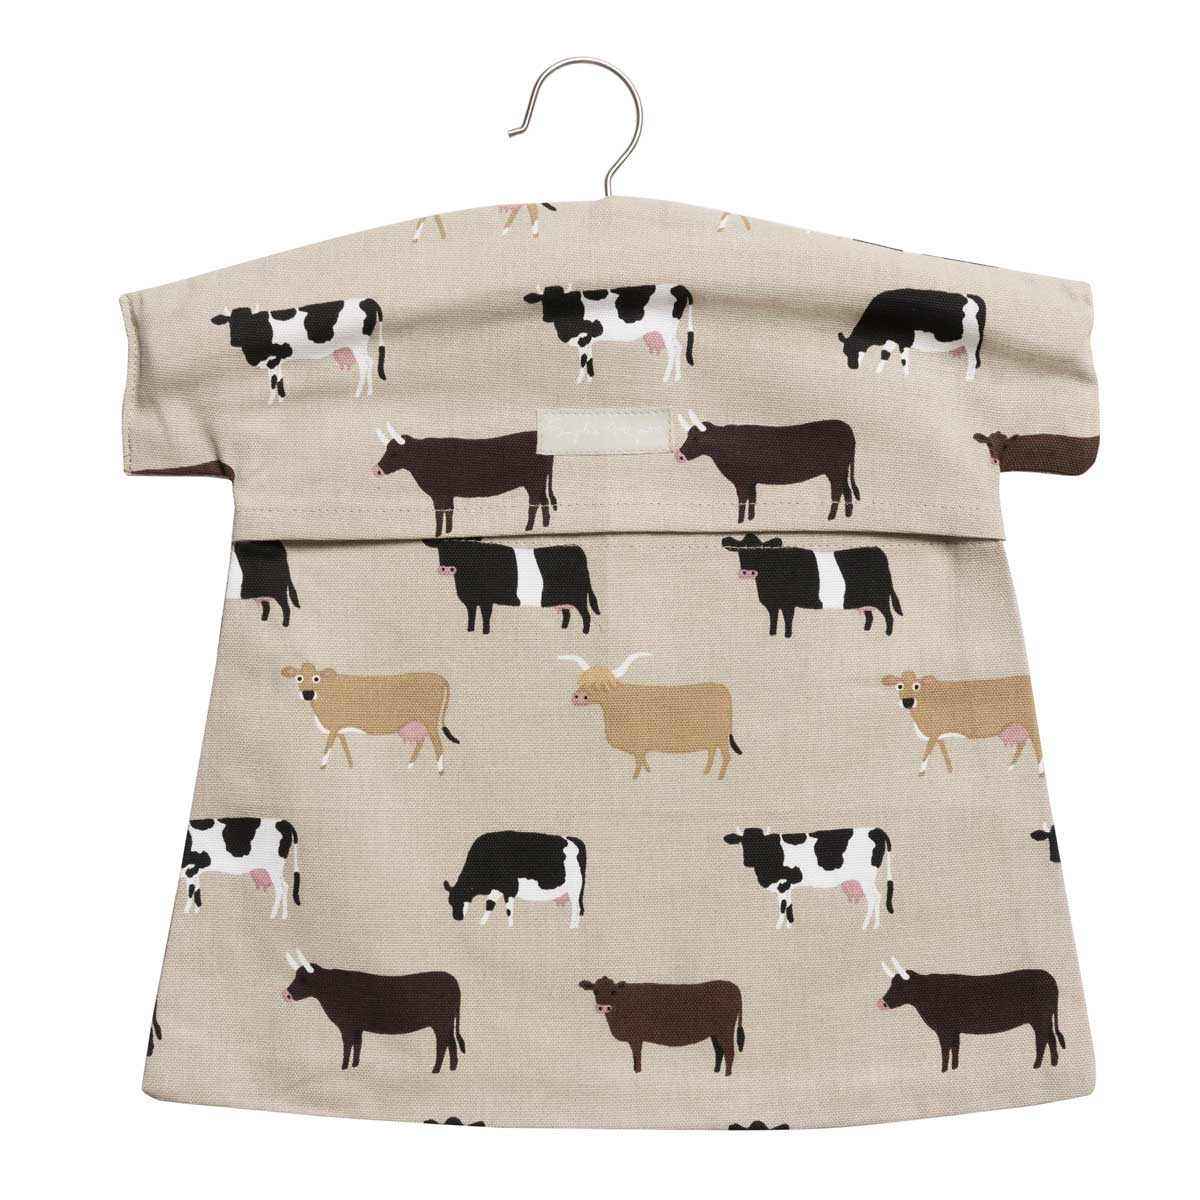 Cows Peg Bag